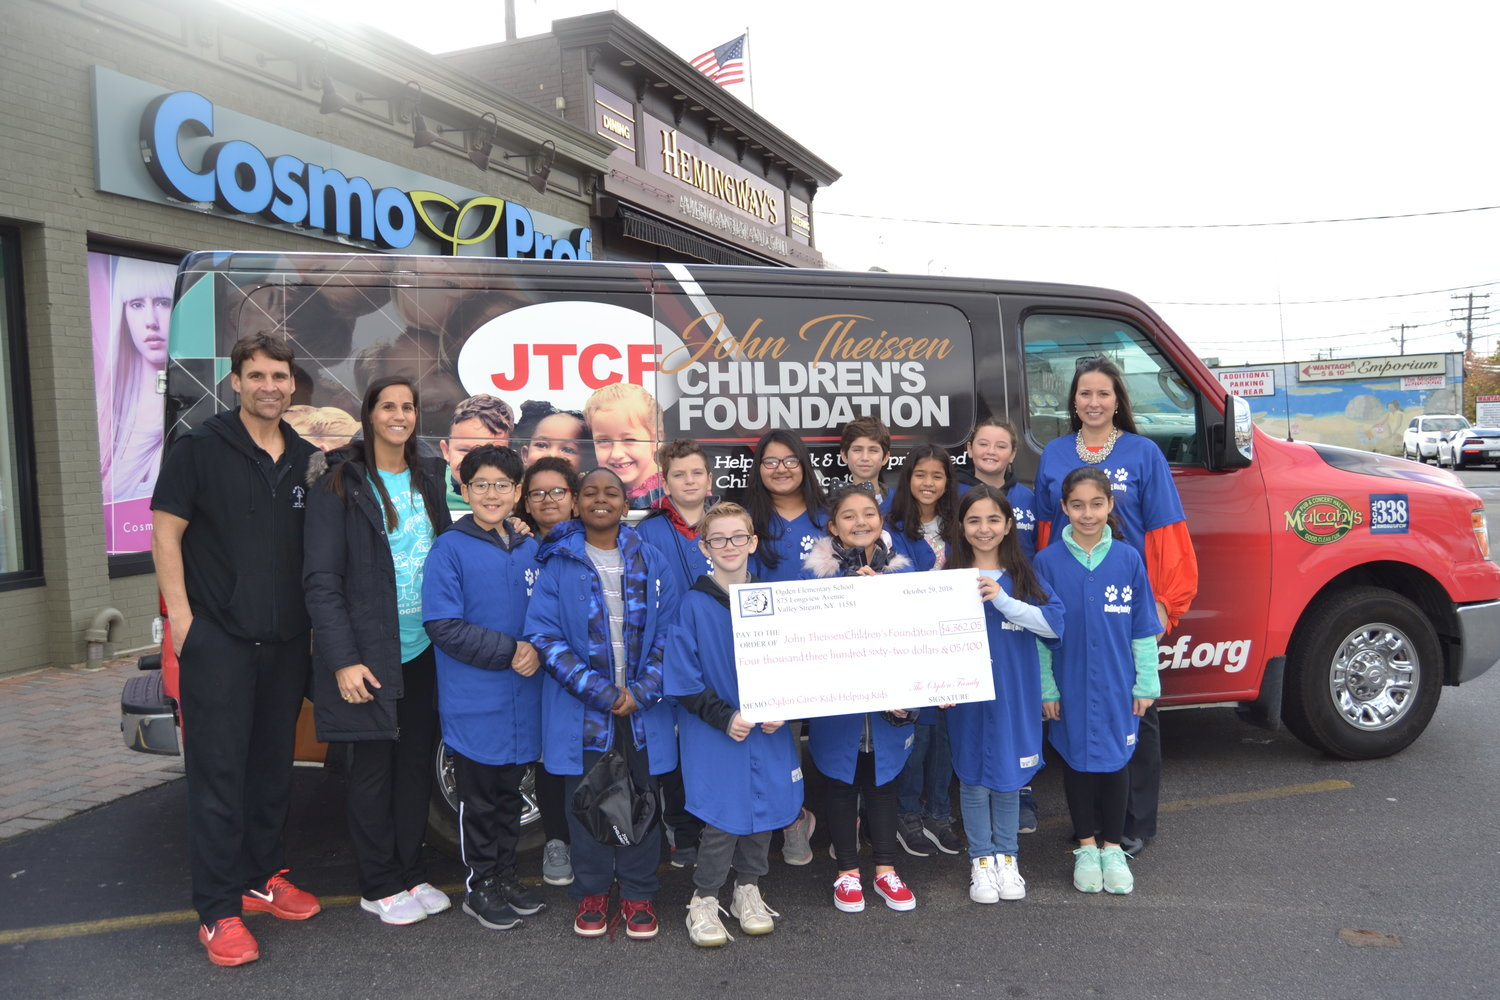 Ogden Elementary School fifth-graders helped deliver money and toys to John Thiessen, far left, and his Children's Foundation. On the left is physical education teacher Rosemarie Ryan and at the far right is social worker Gina Carrillo.